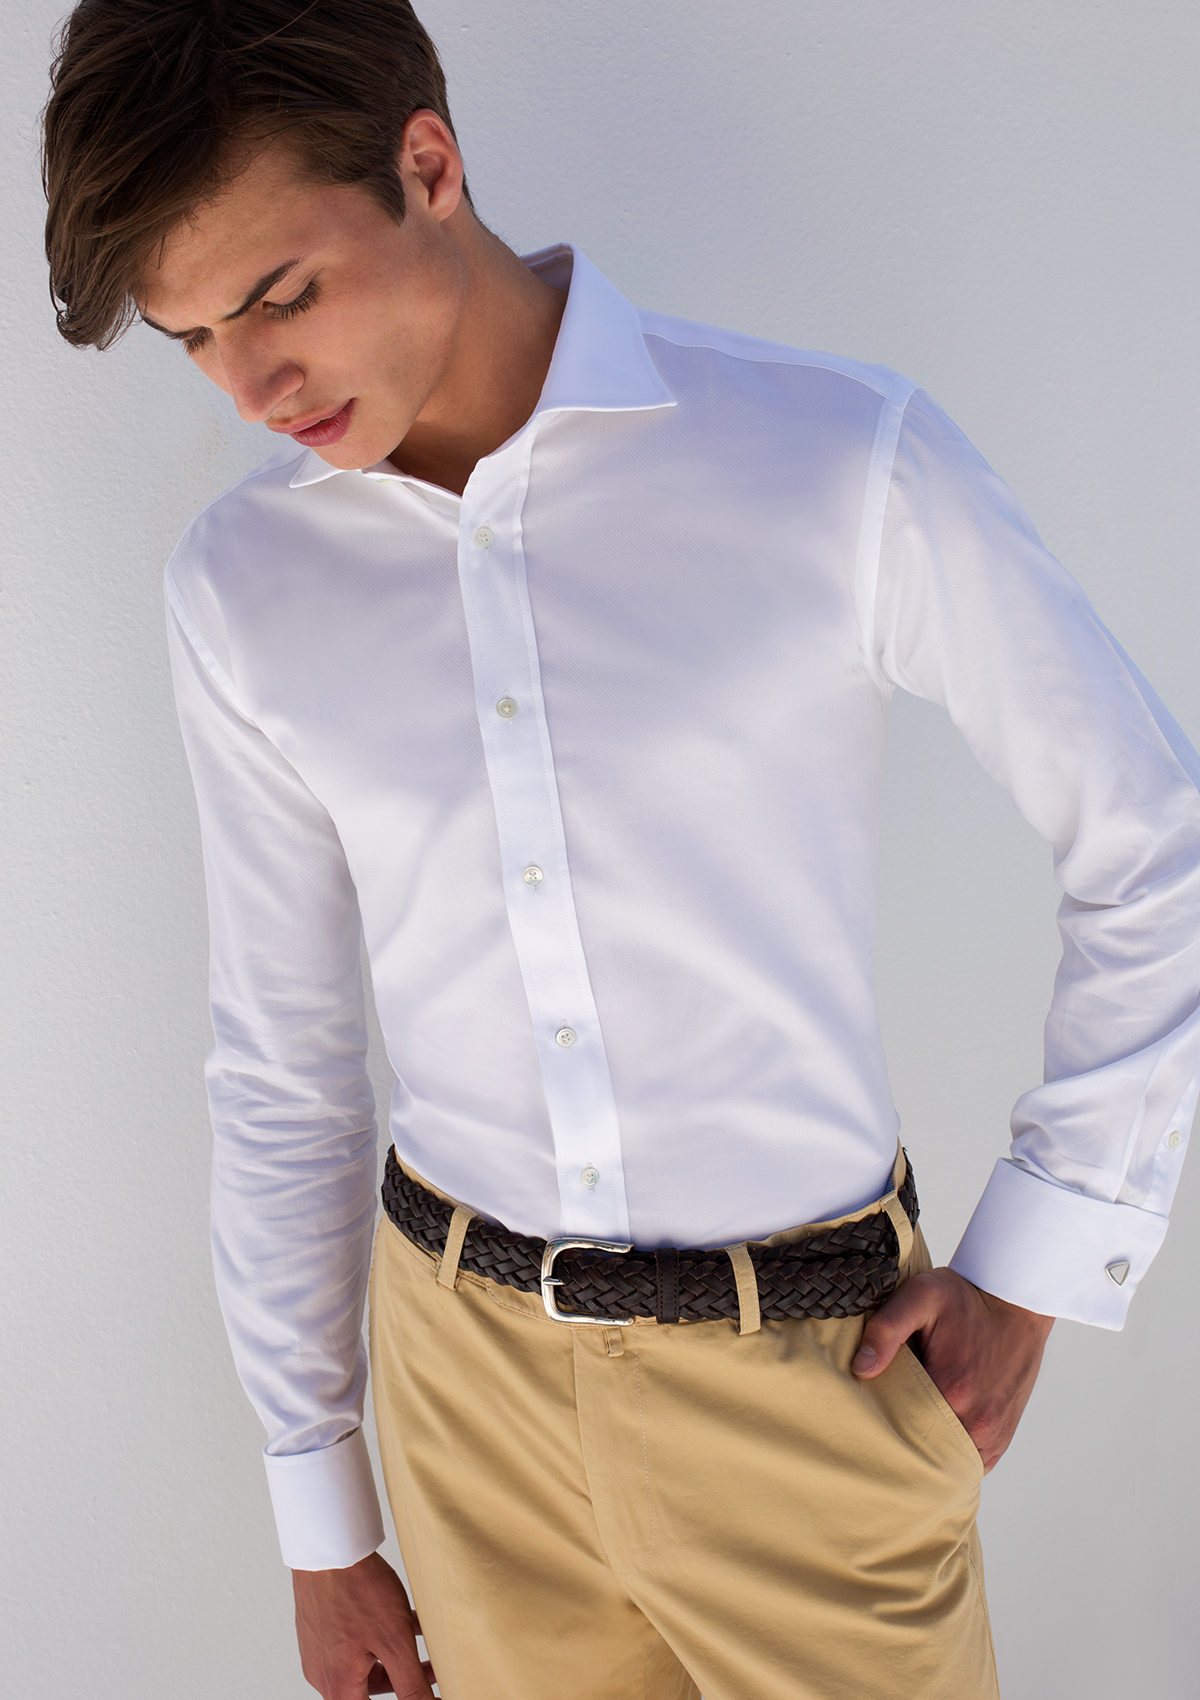 a28b097b9fbc DOUBLE CUFF WITH CHINOS  WHY NOT  Τόλμησε να συνδυάσεις ένα double ...